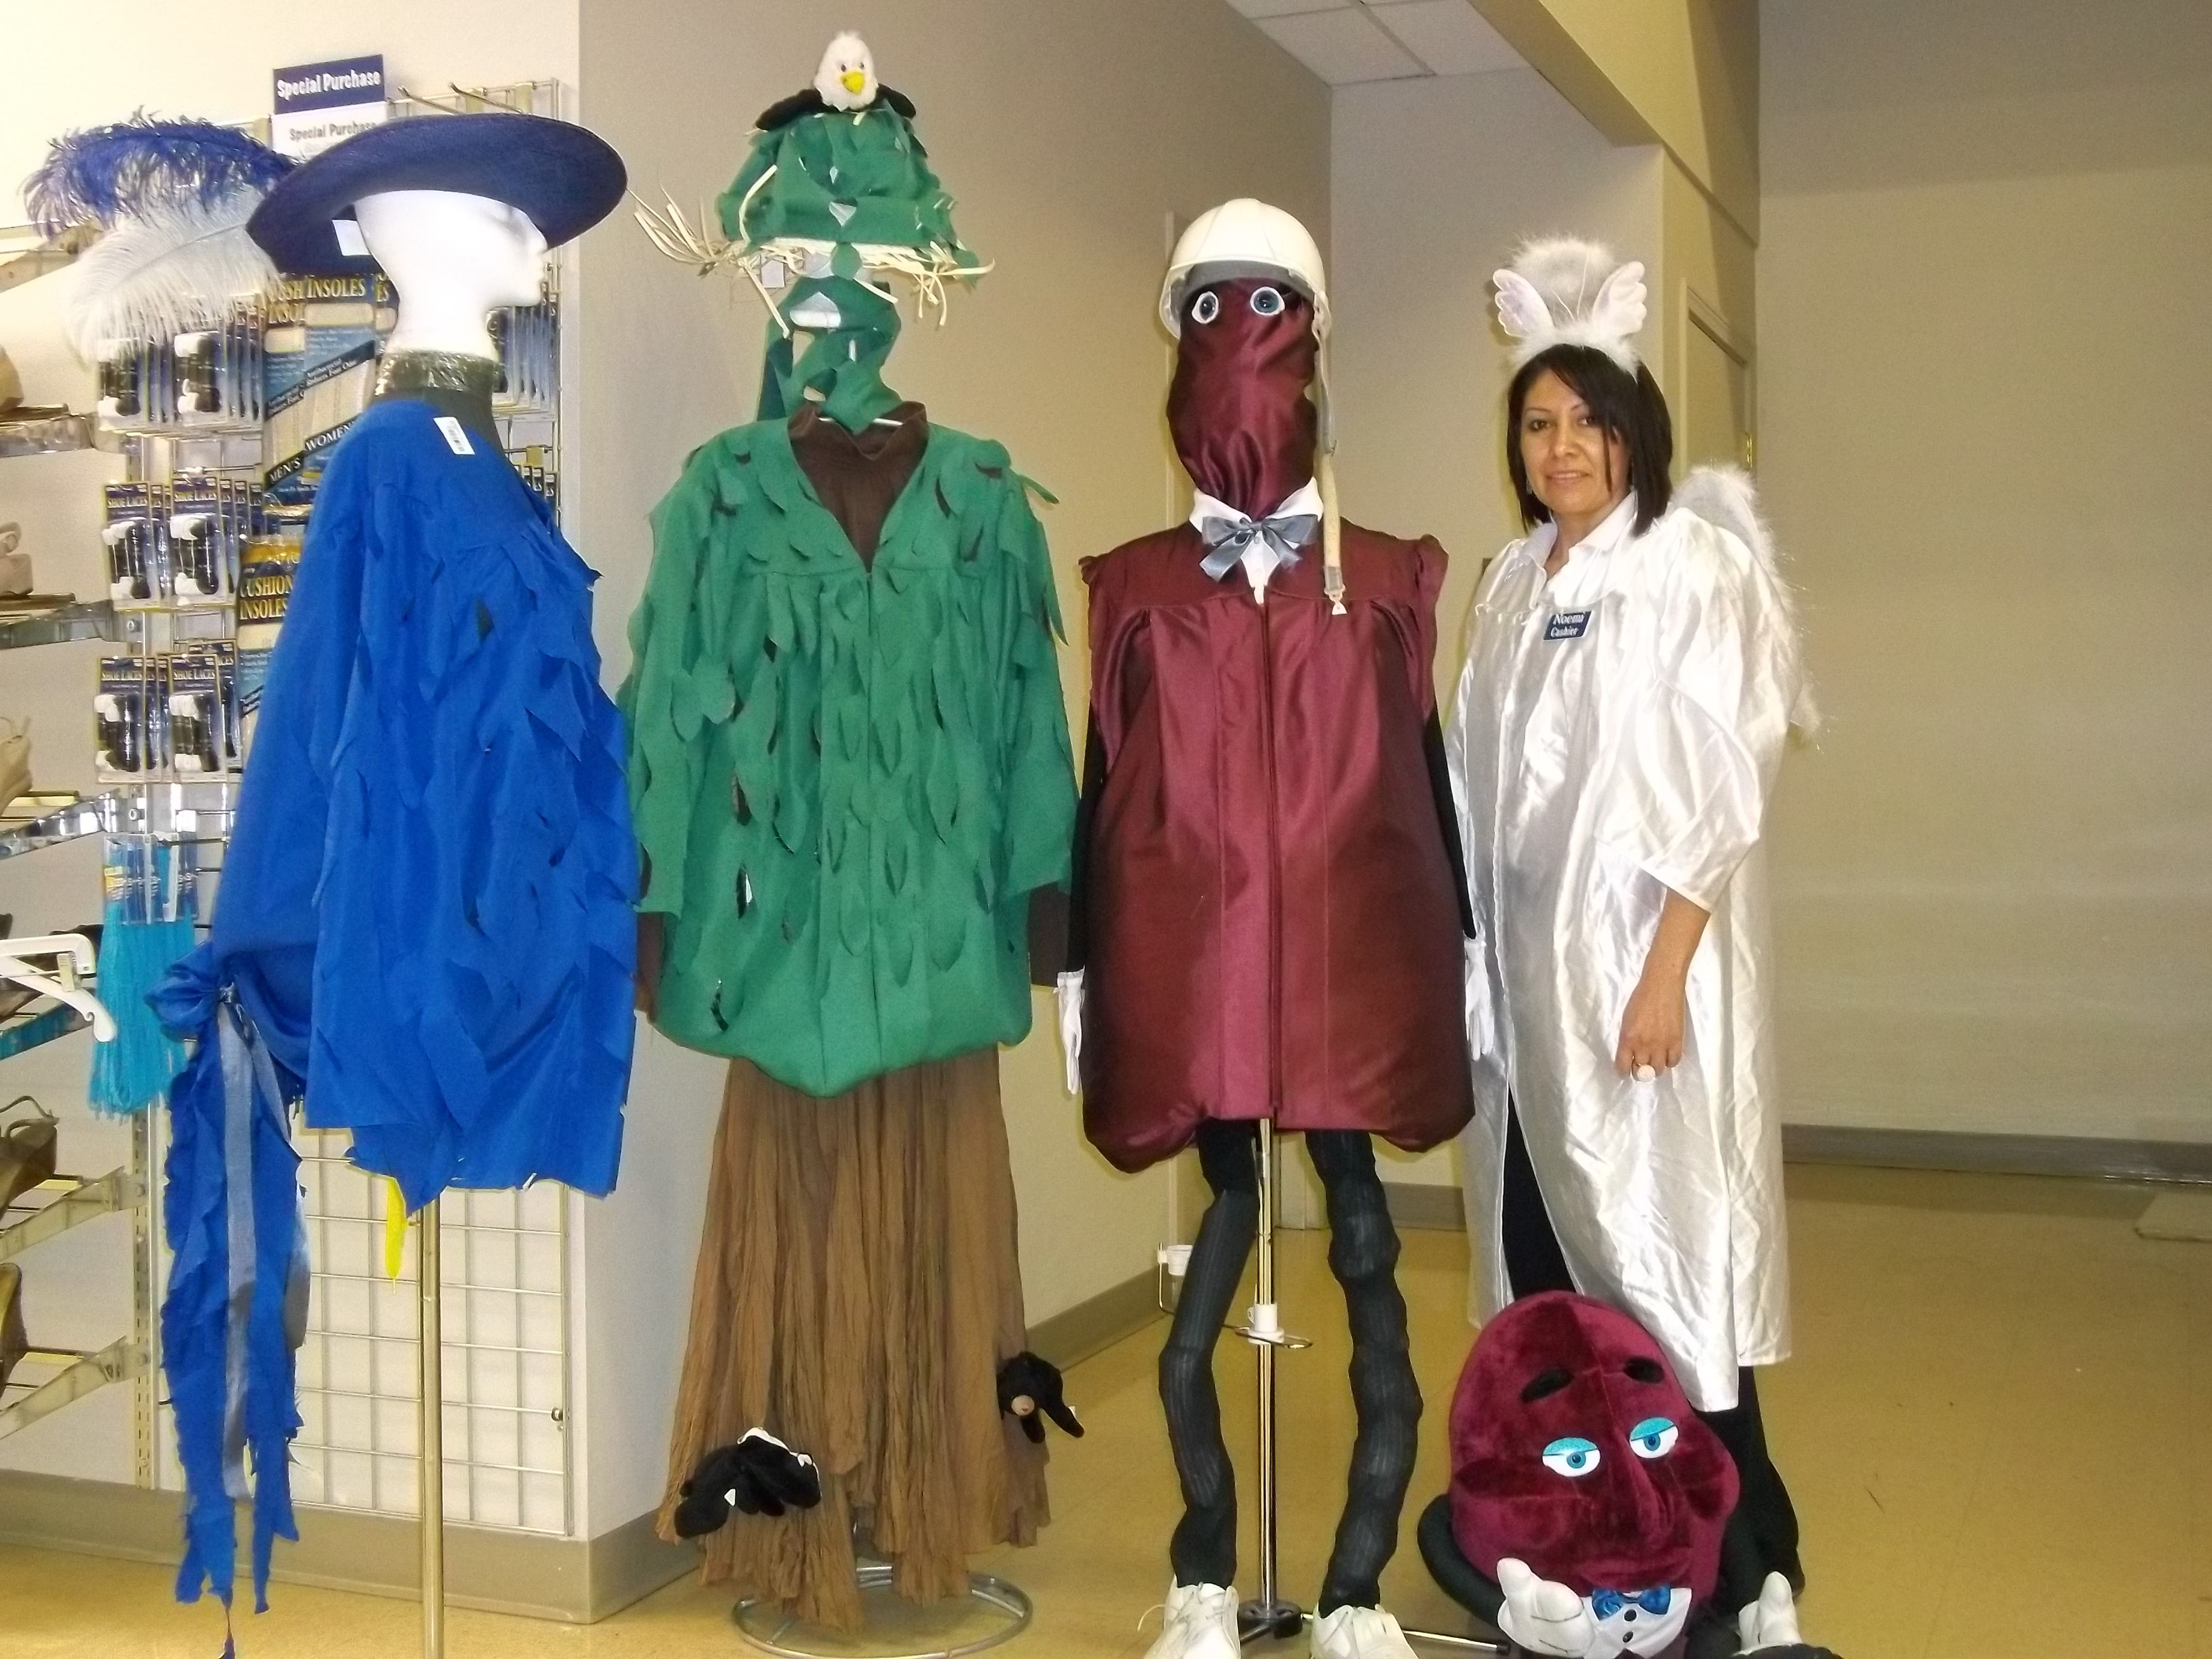 Very clever: How to turn an old graduation gown into a costume ...